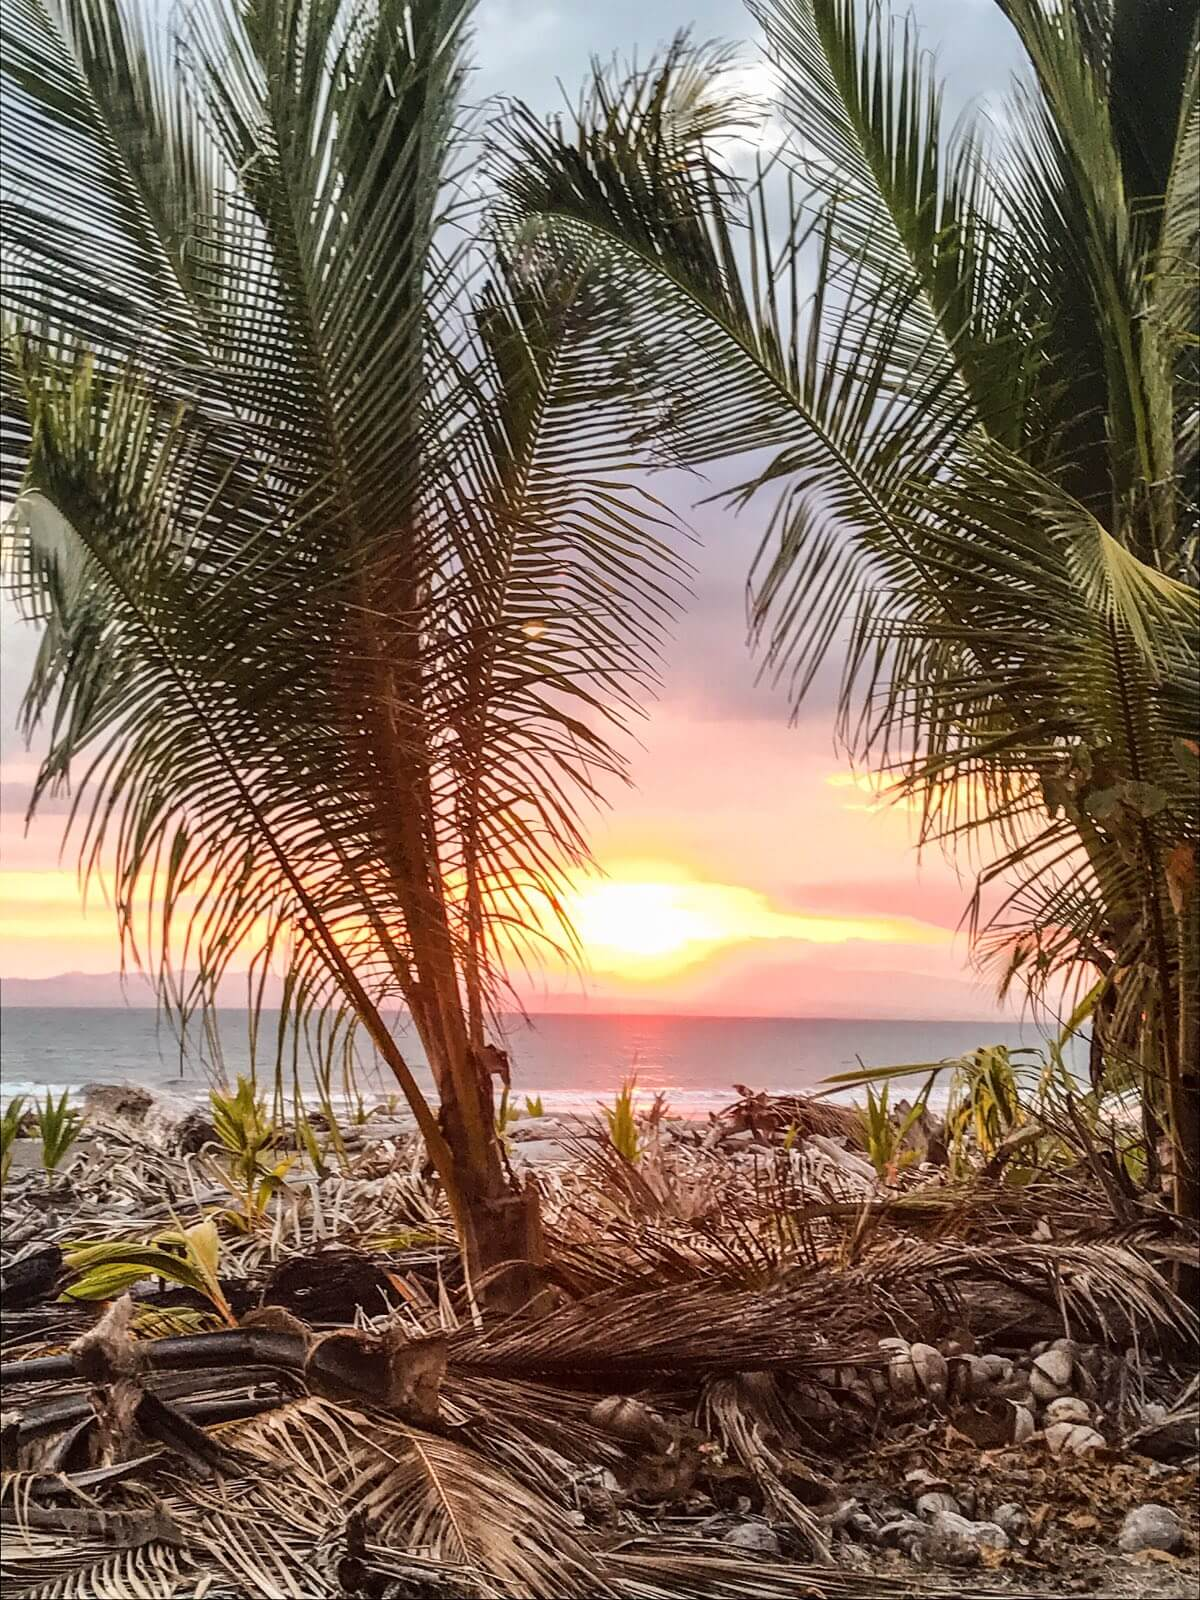 Sunset between 2 palm trees in Zancudo, Costa Rica